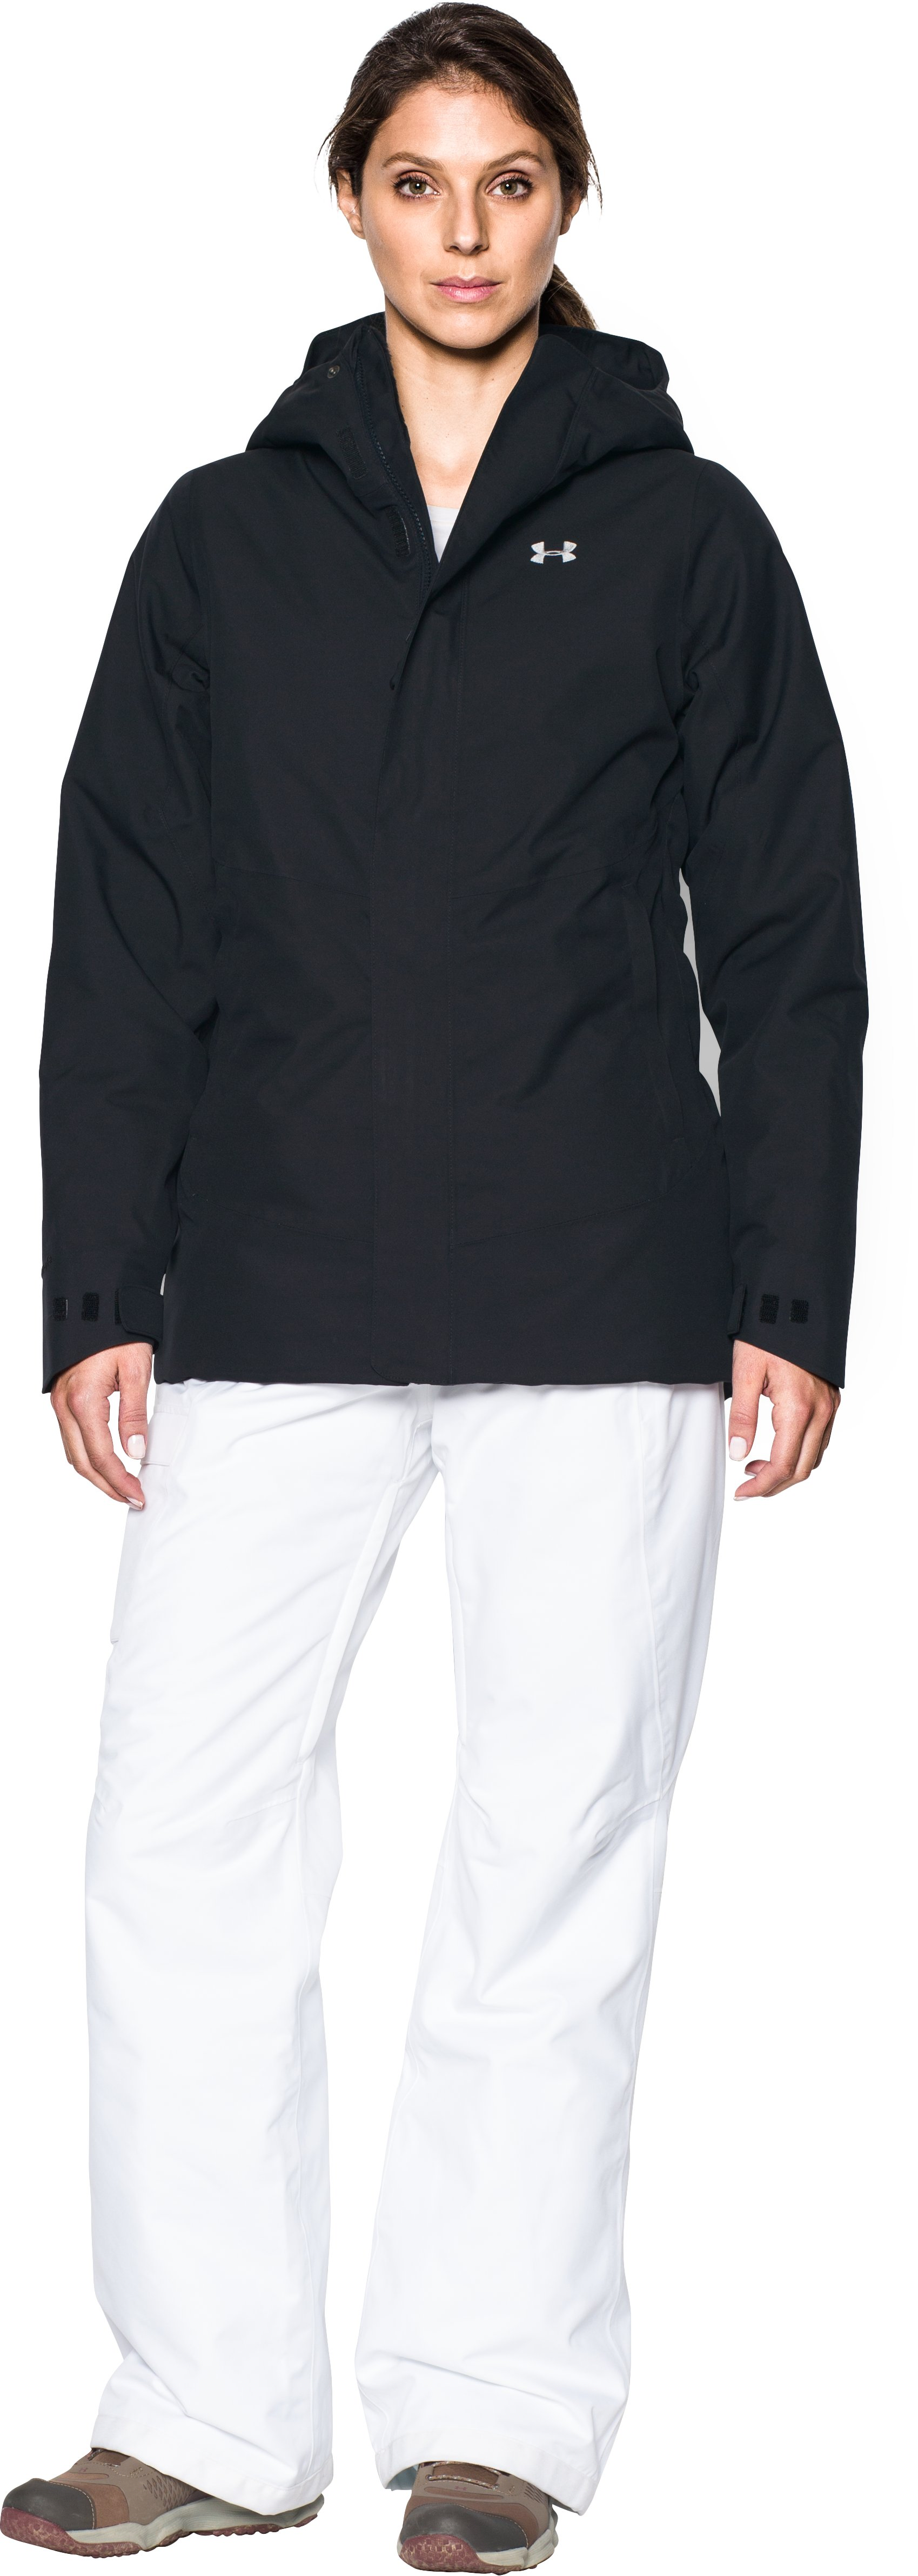 Women's ColdGear® Infrared Powerline Insulated Jacket 2 Colors $199.99